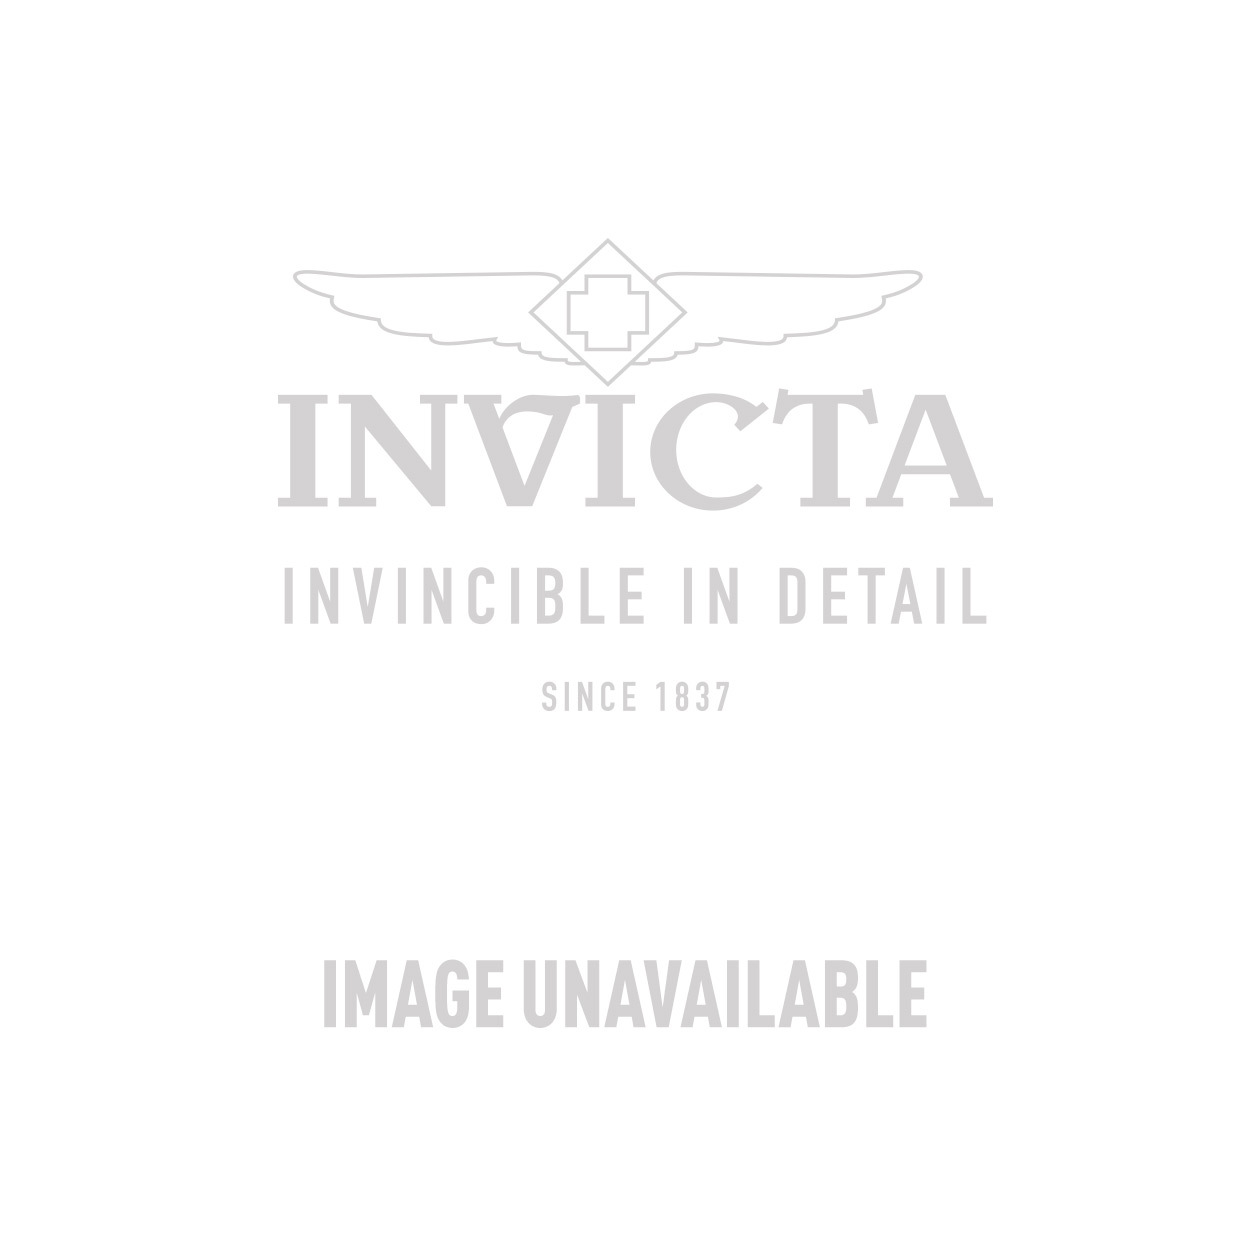 Invicta Coalition Forces Swiss Made Quartz Watch - Stainless Steel case Stainless Steel band - Model 17638